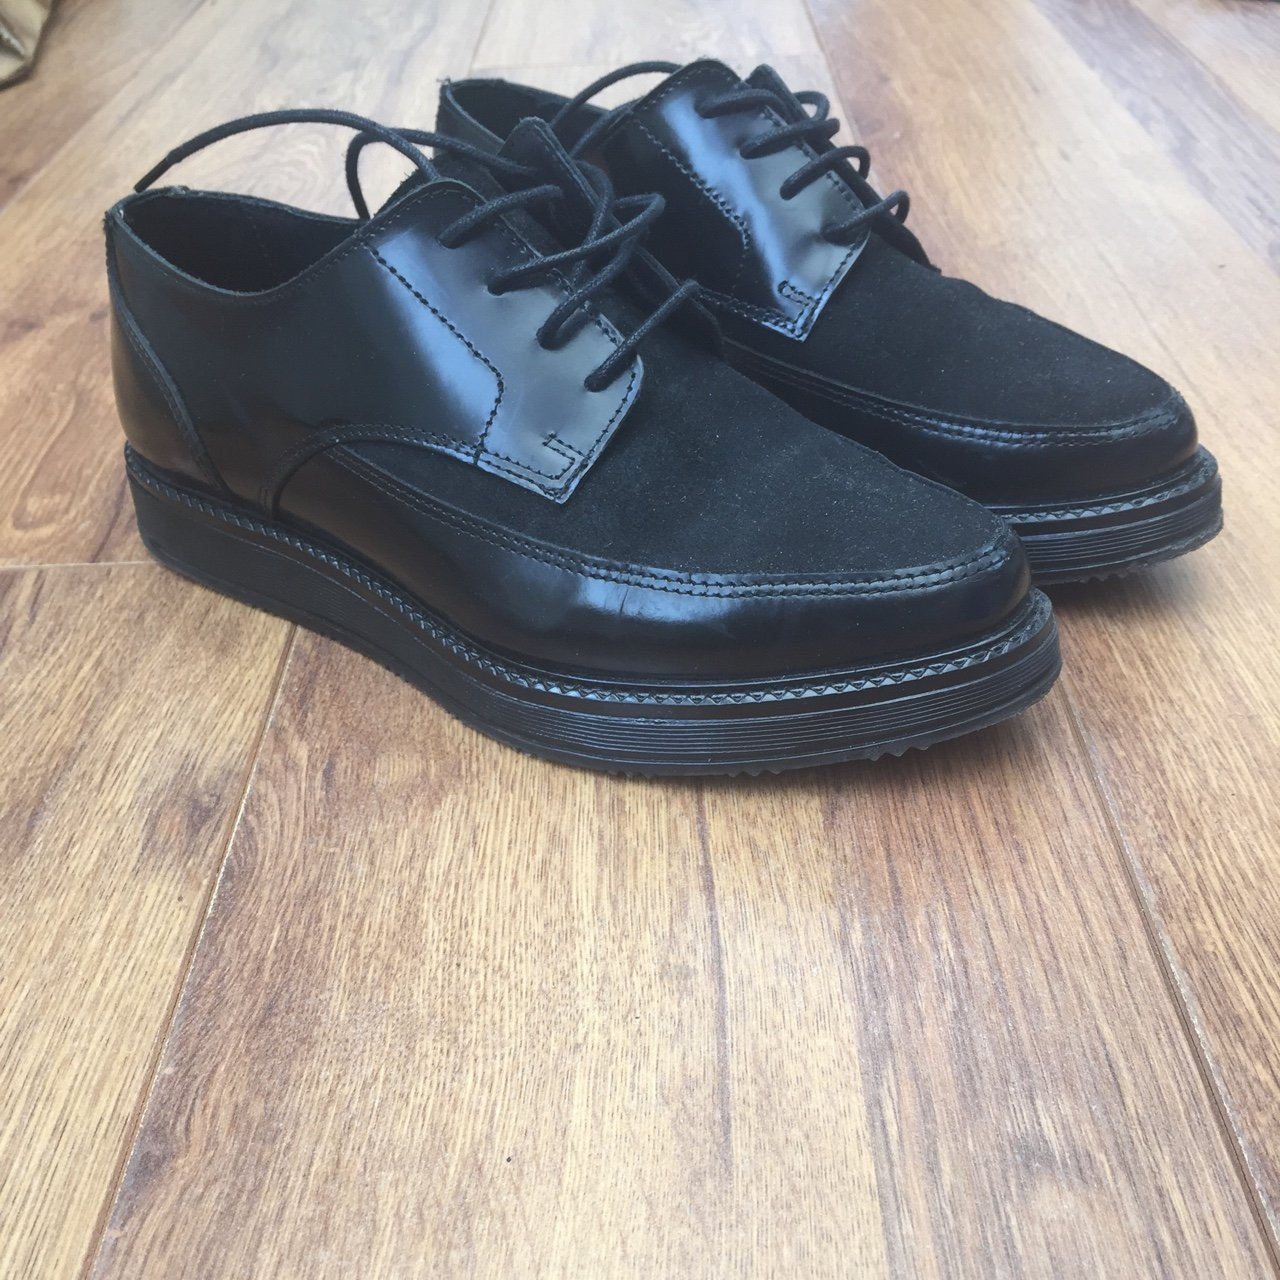 b259a76c0ea OFFICE brogues size 5 (hardly worn) - Depop